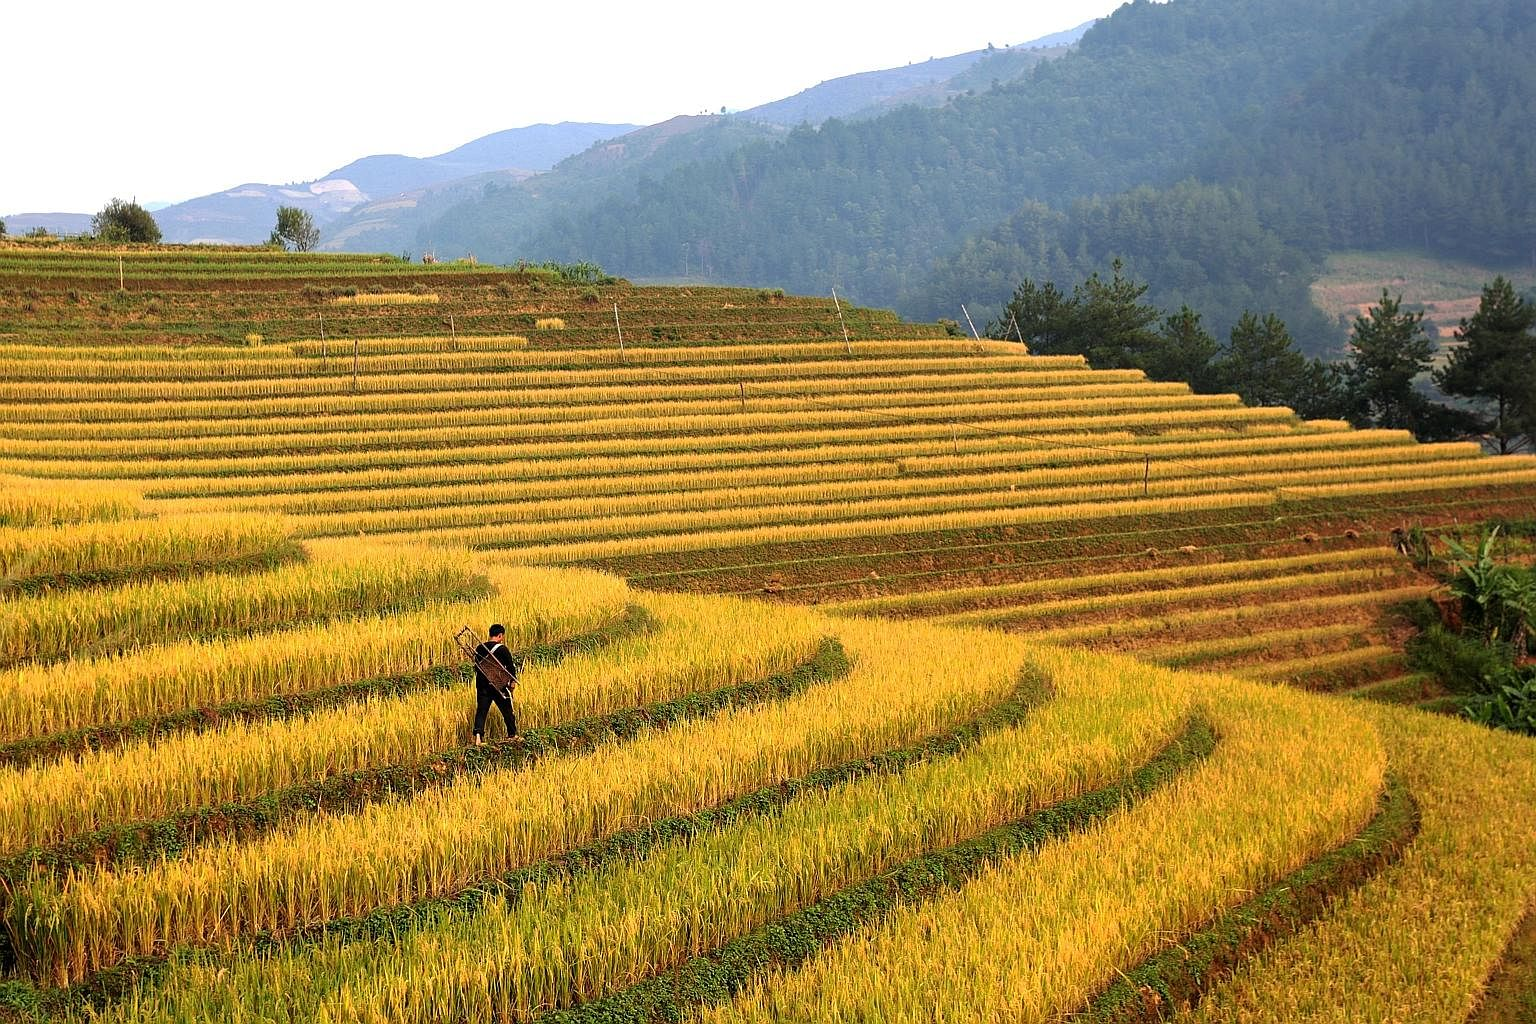 Rice fields in Vietnam's northern agricultural province of Yen Bai. Wild swings in the